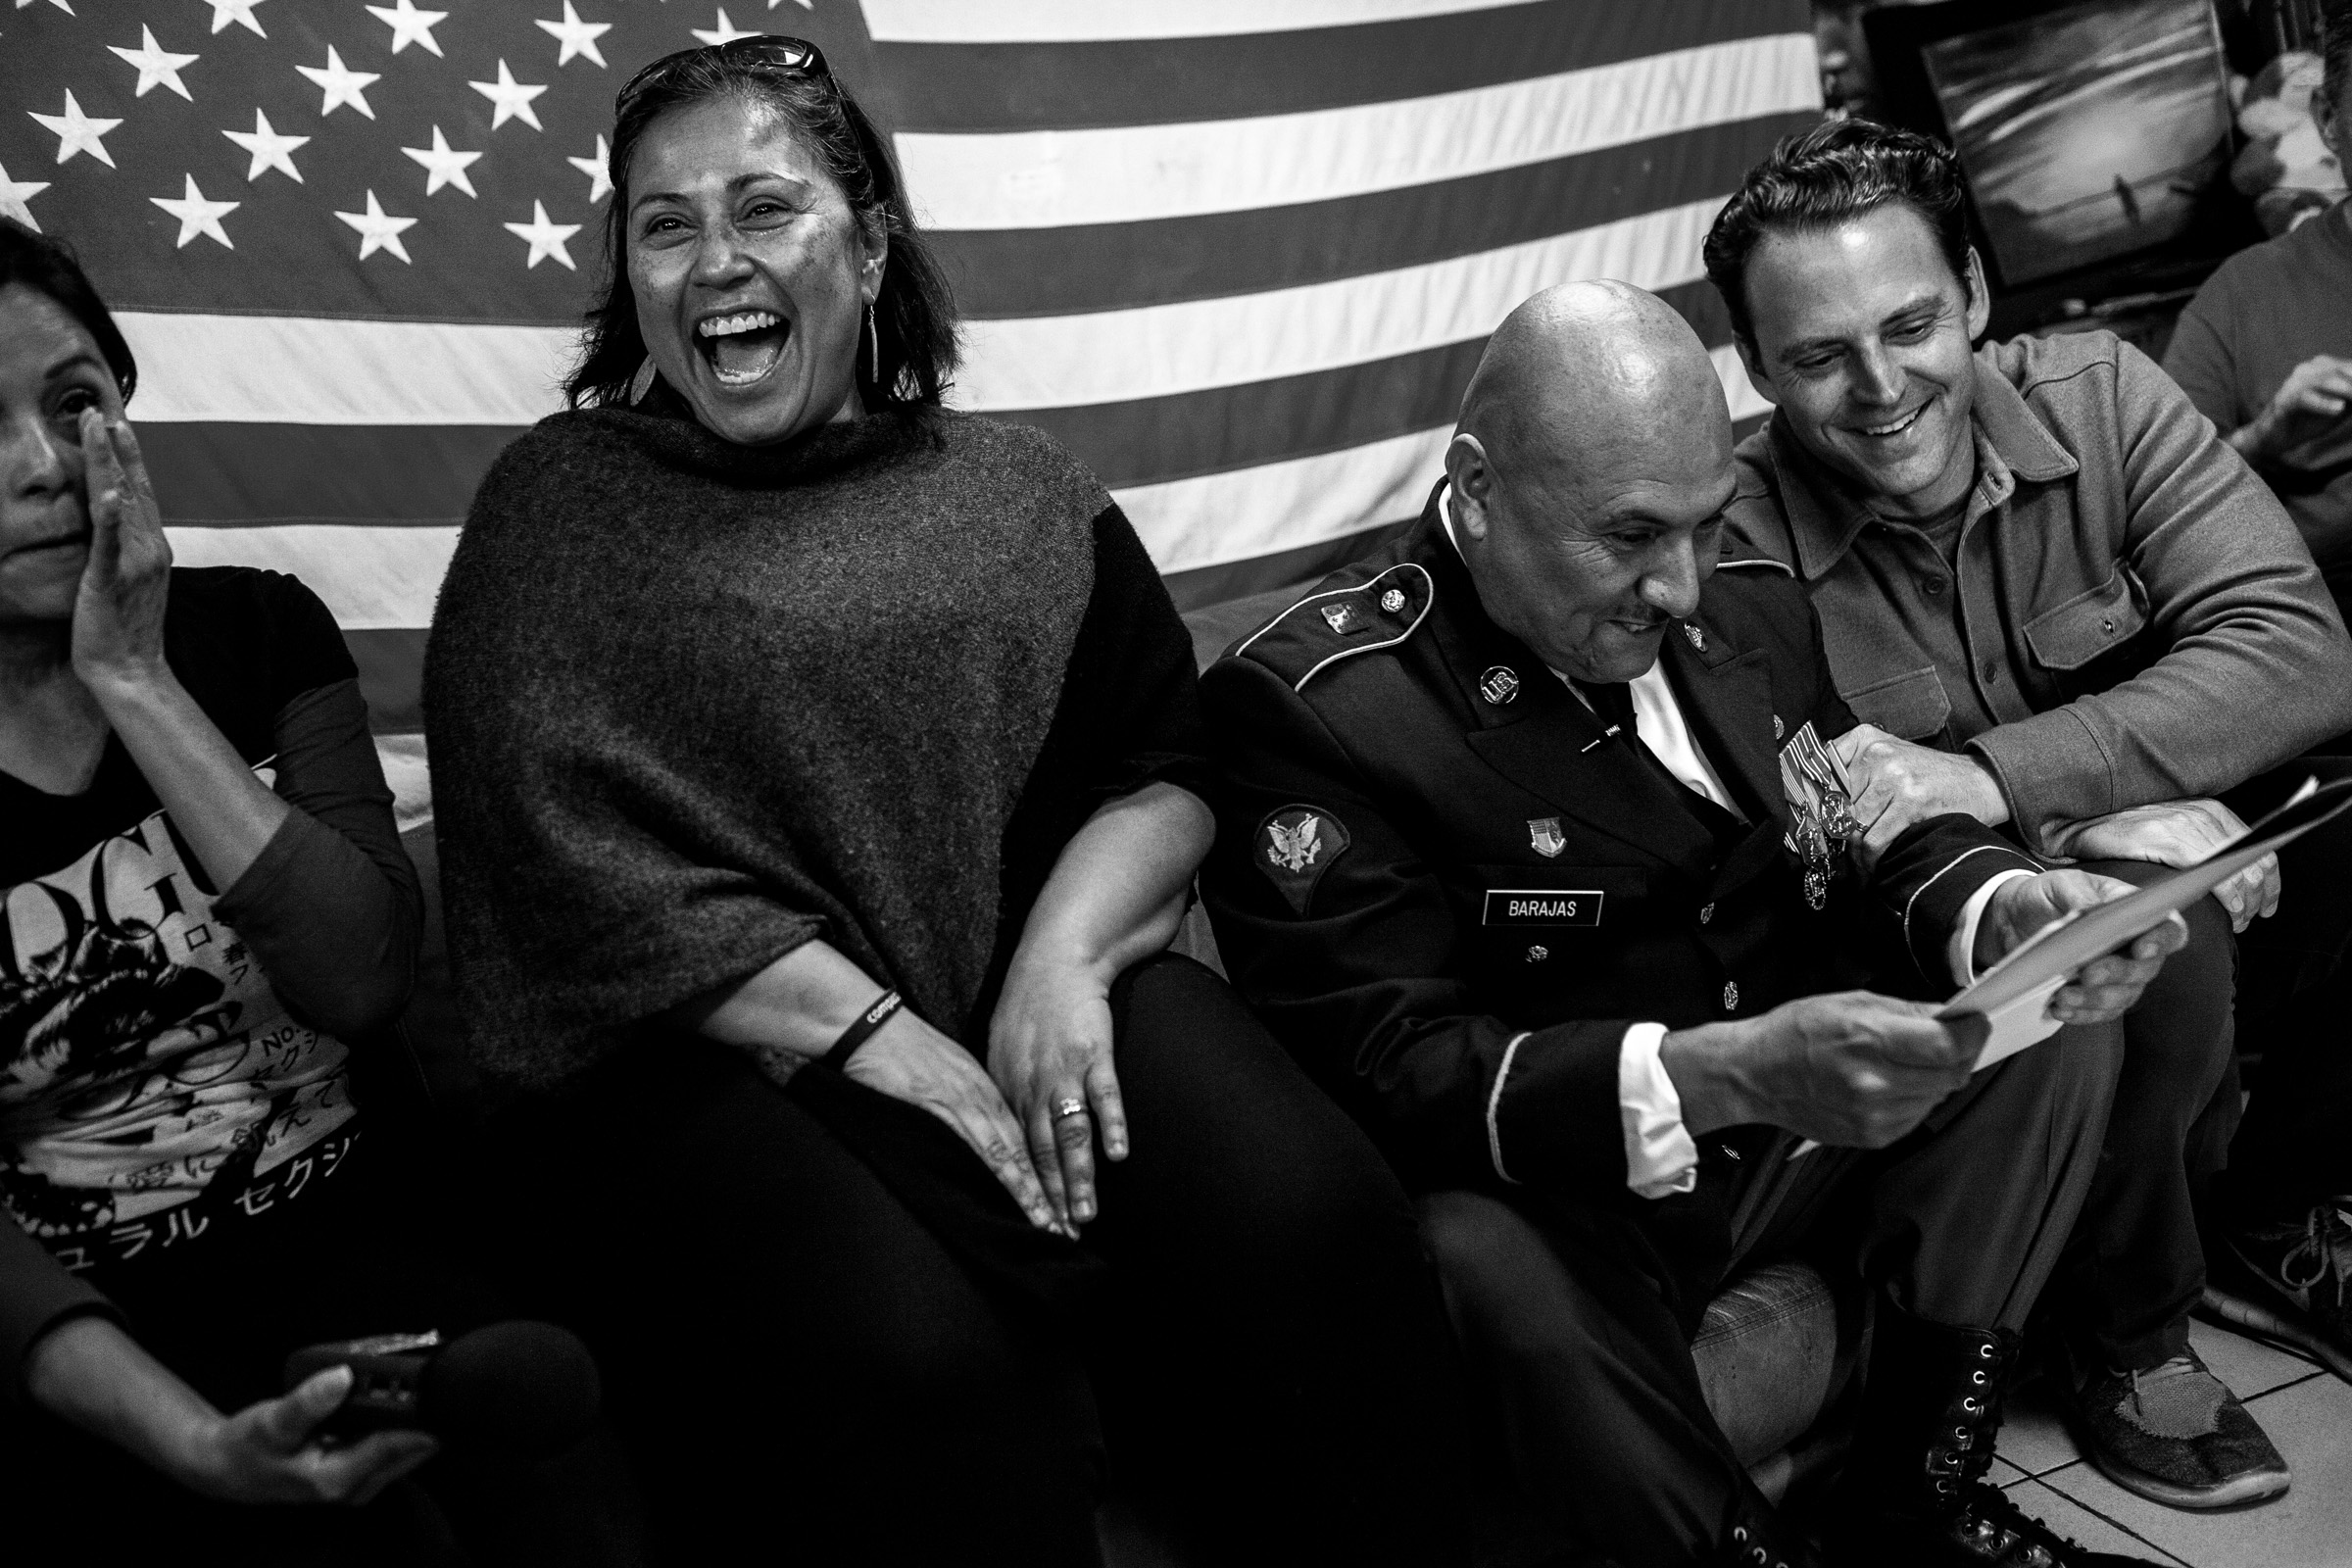 Deported mother Yolanda Varona, from left, Norma Chavez-Peterson, executive director of the ACLU of San Diego and Imperial counties, Hector Barajas-Varela, deported U.S. Army veteran Hector Barajas-Varela, and San Diego County Board of Supervisors candidate Nathan Fletcher, right, react after receiving a letter from immigration officials granting Barajas-Varela a naturalization ceremony in Tijuana, Mexico, Thursday, March 29, 2018.   Lawyers for Barajas-Varela said the government informed them Thursday their client should attend a naturalization ceremony on April 13 in San Diego. U.S. Citizenship and Immigration Services confirmed the decision. (Photo by Joel Angel Juárez/GroundTruth)